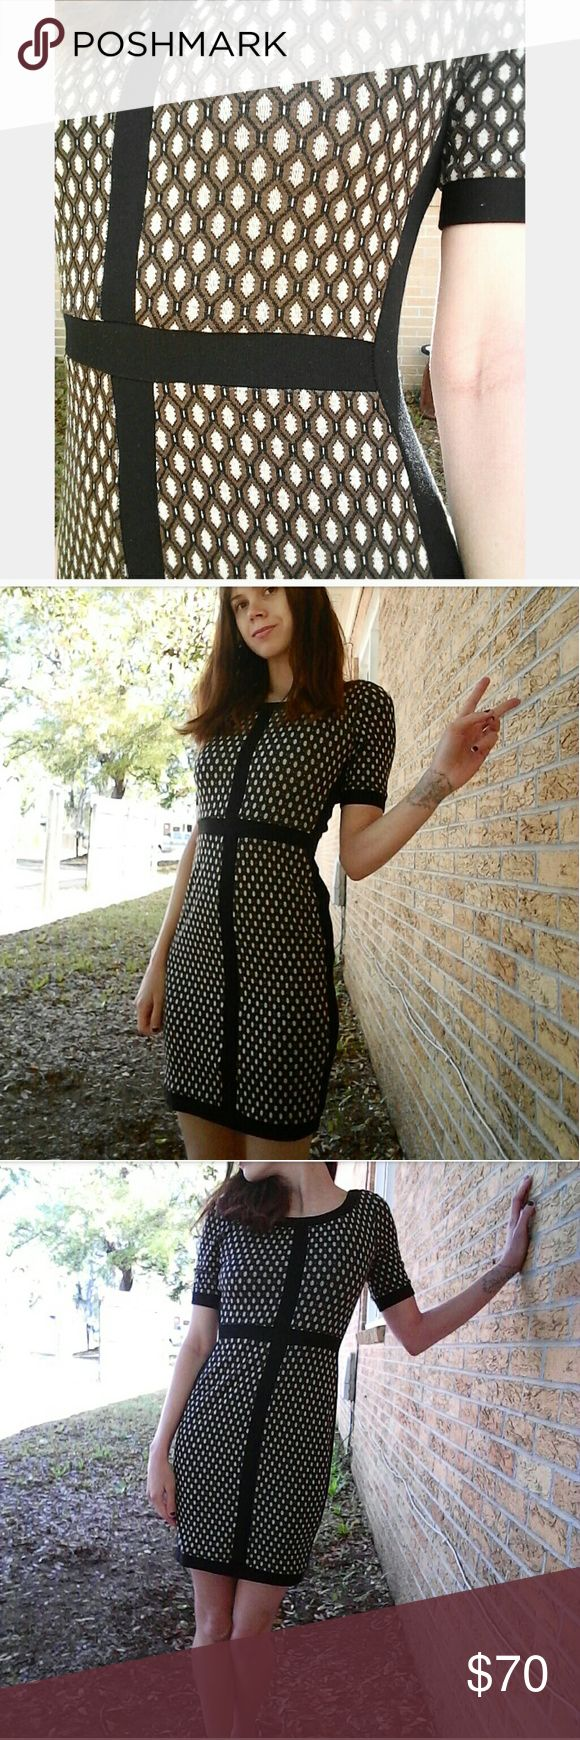 Baileys 44 brown houndstooth dress Gorgeous knit dress, tight fitting, very comfortable mature dress. Only flaw is the seem that held the slip to the dress broke, this however does not affect the quality of the garment nor can you visually see this. Bailey 44 Dresses Mini